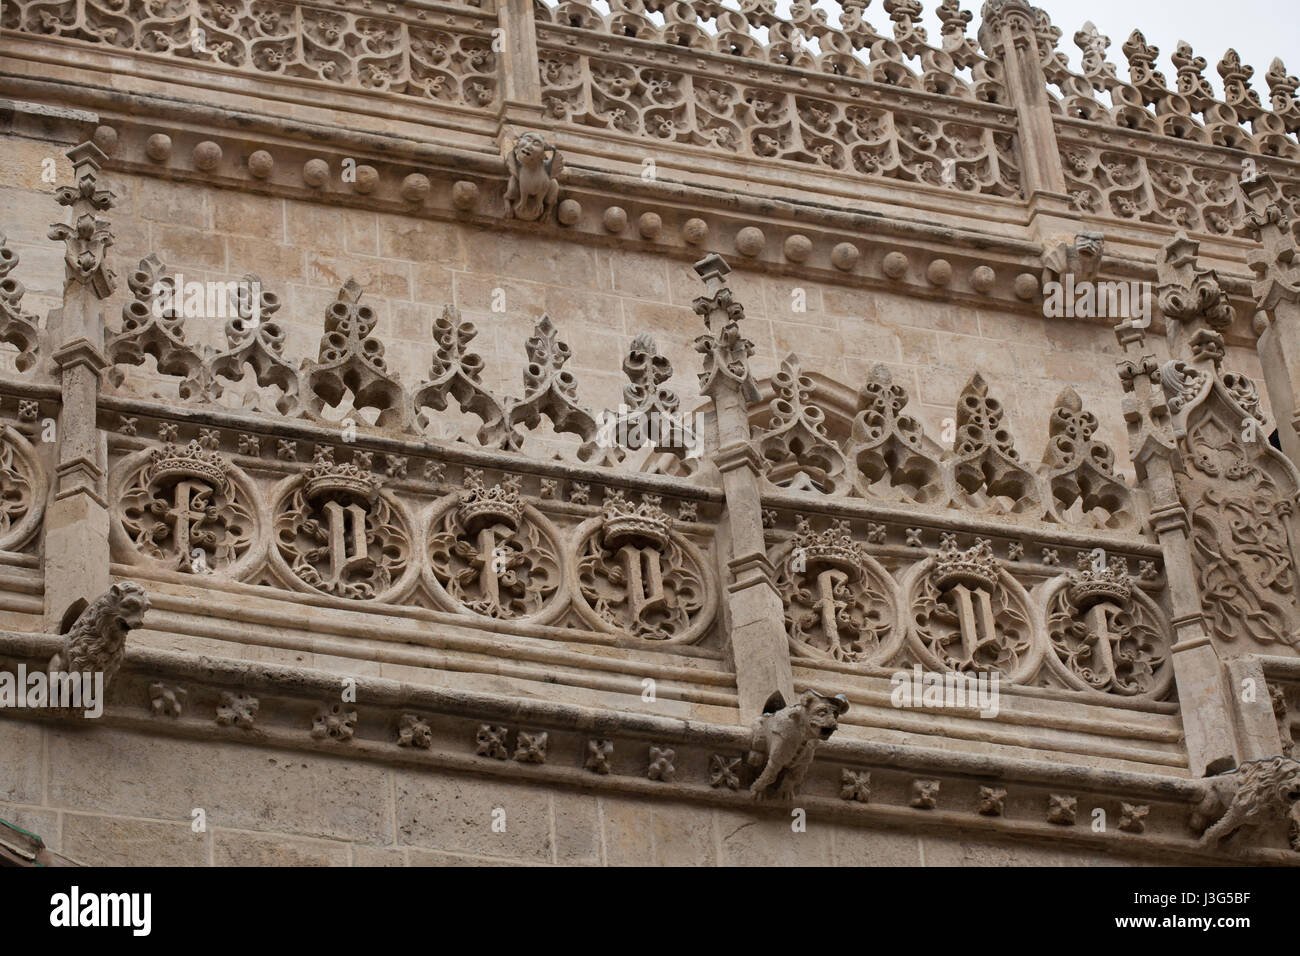 Royal monograms of Queen Isabella I of Castile and King Ferdinand II of Aragon depicted on the facade of the Royal - Stock Image